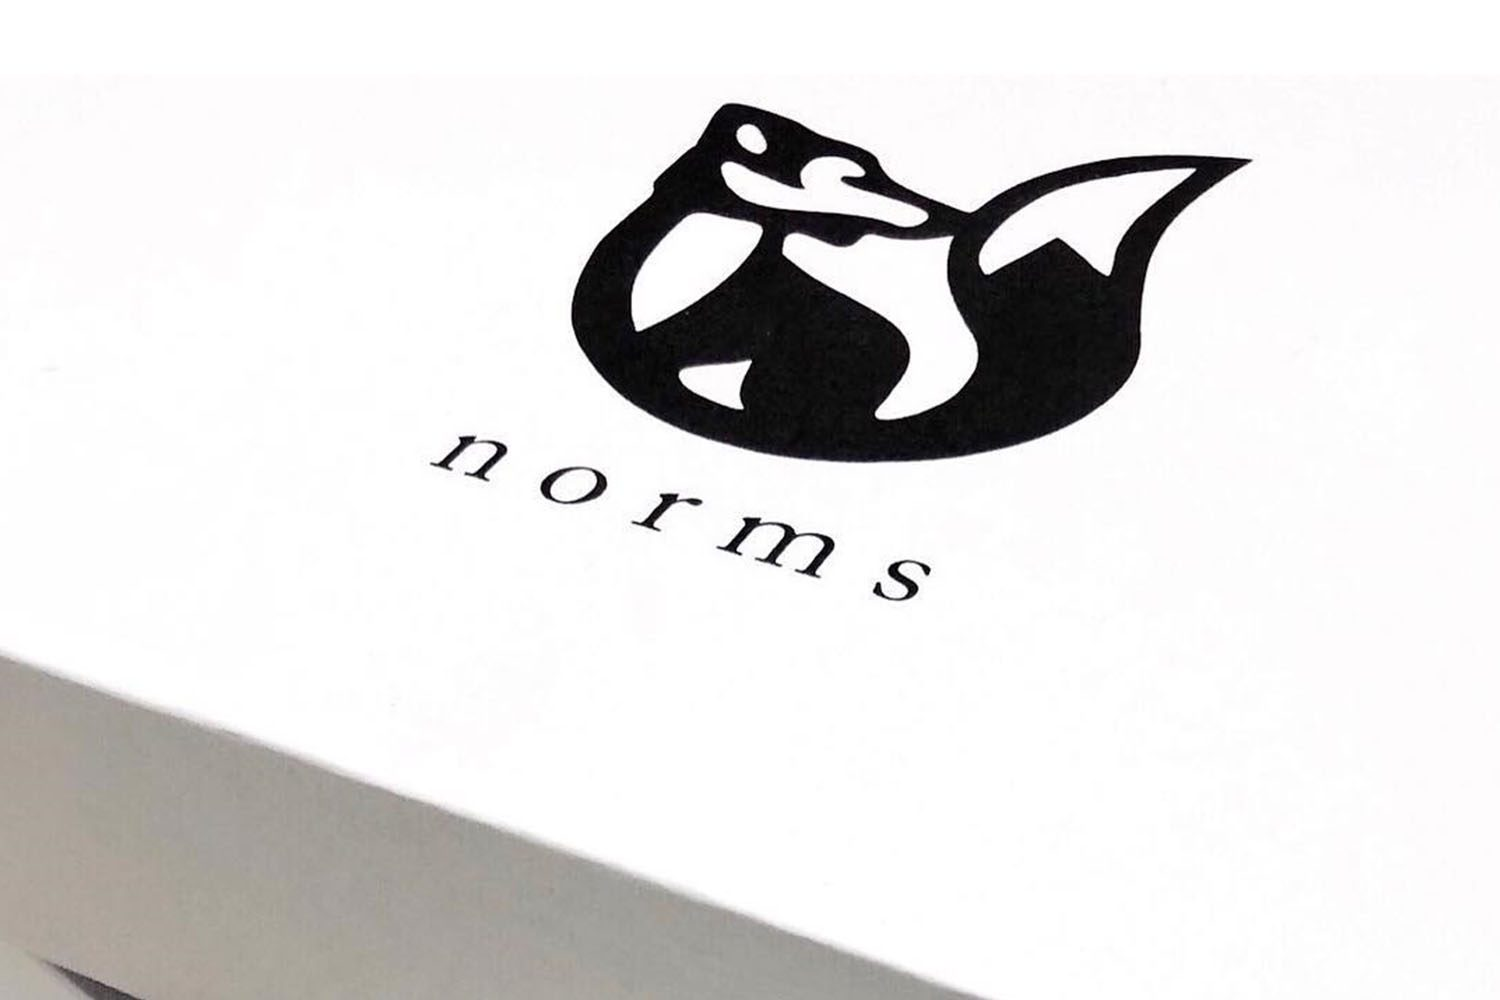 NORMS PROJECT 1